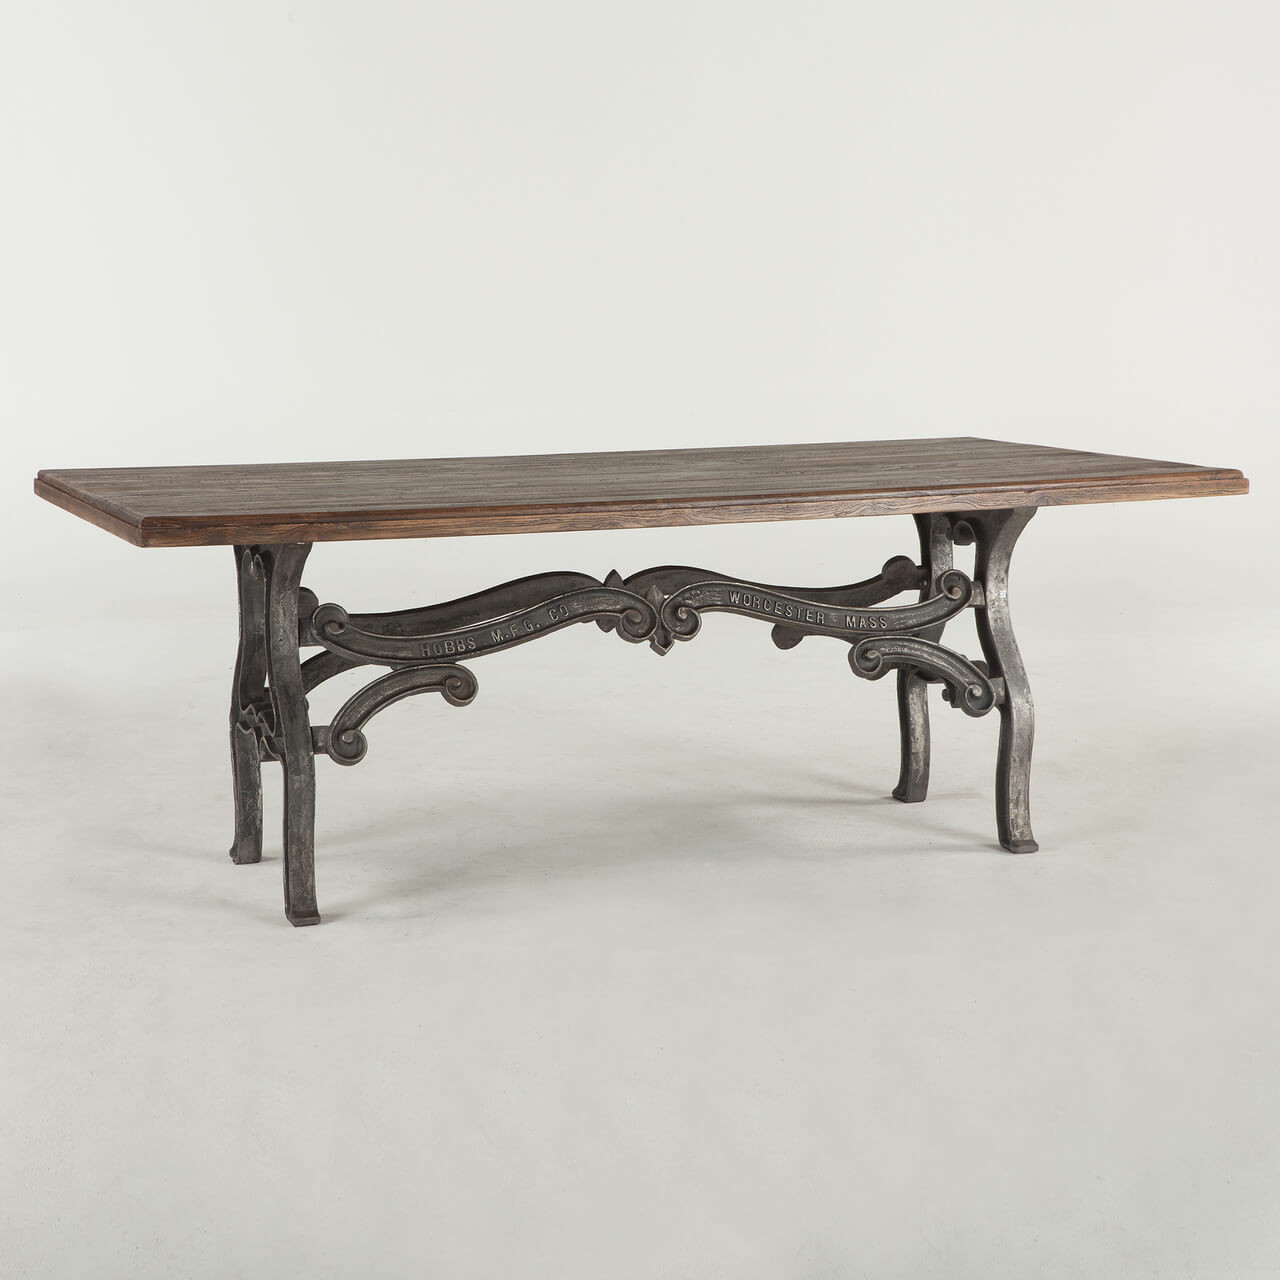 Remarkable Hobbs French Industrial Dining Room Table 84 Download Free Architecture Designs Xaembritishbridgeorg